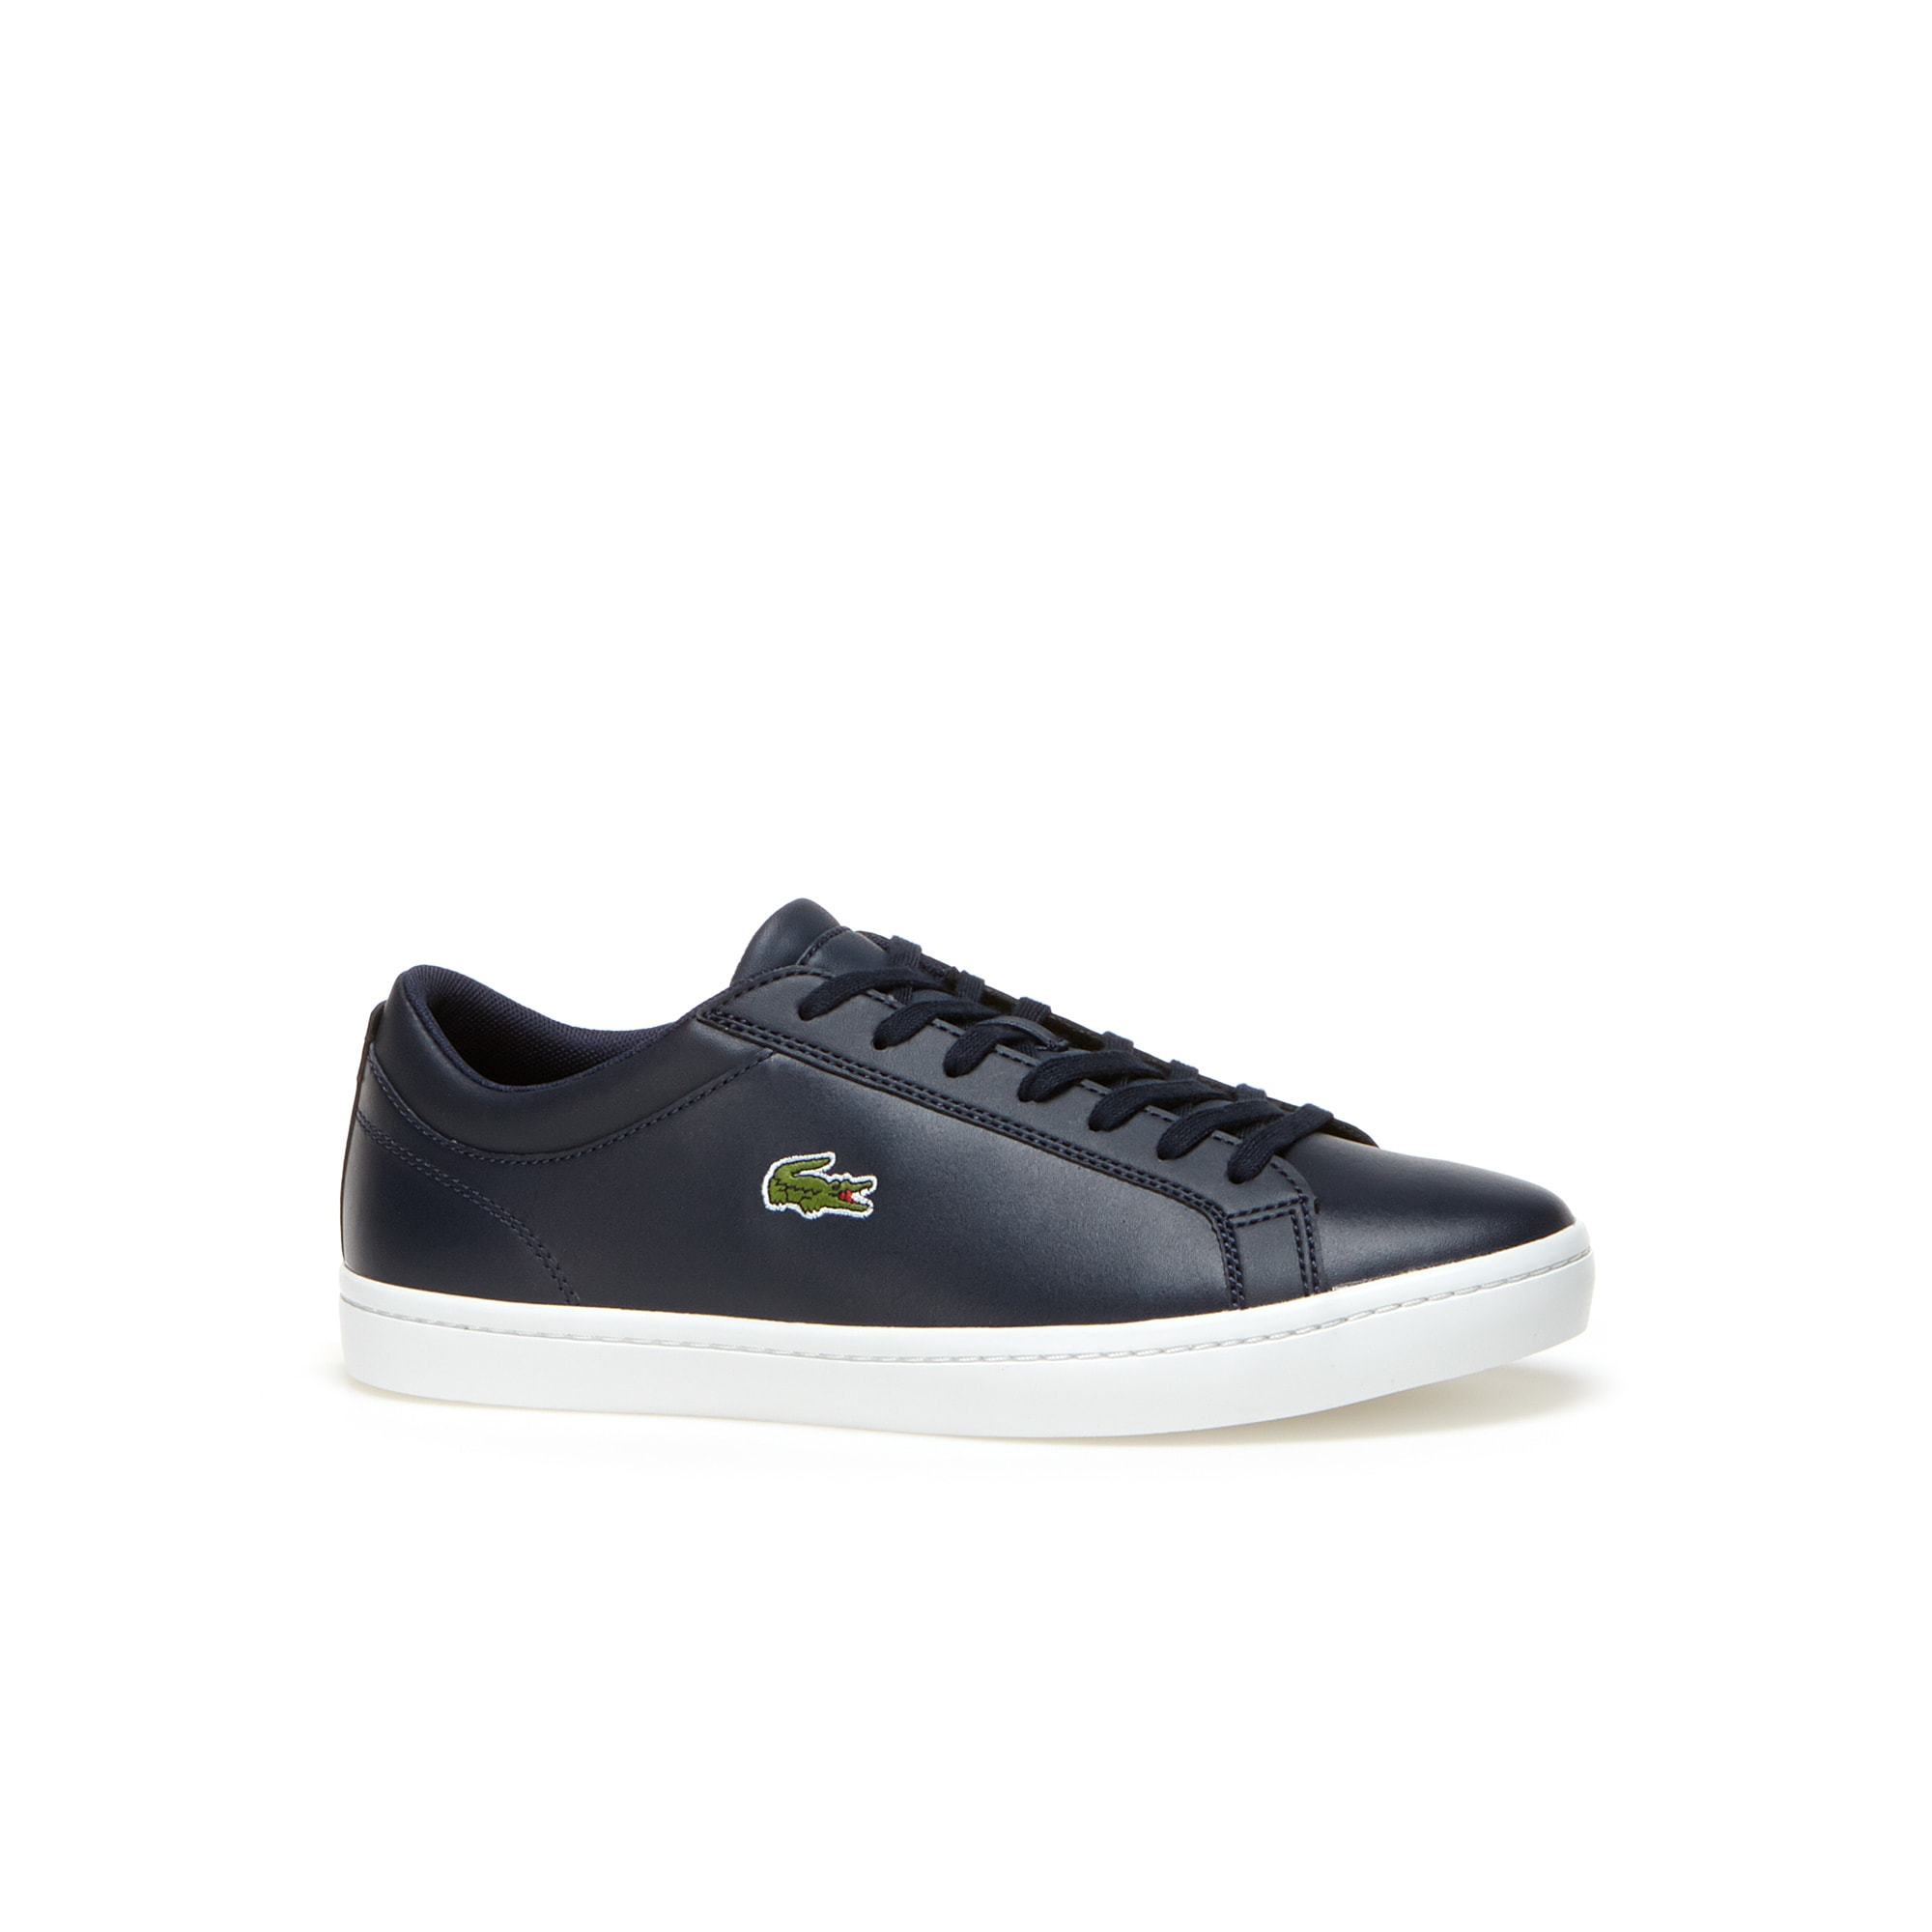 f1e0d85a168 Lacoste shoes for men: Sneakers, Trainers, Boots | LACOSTE